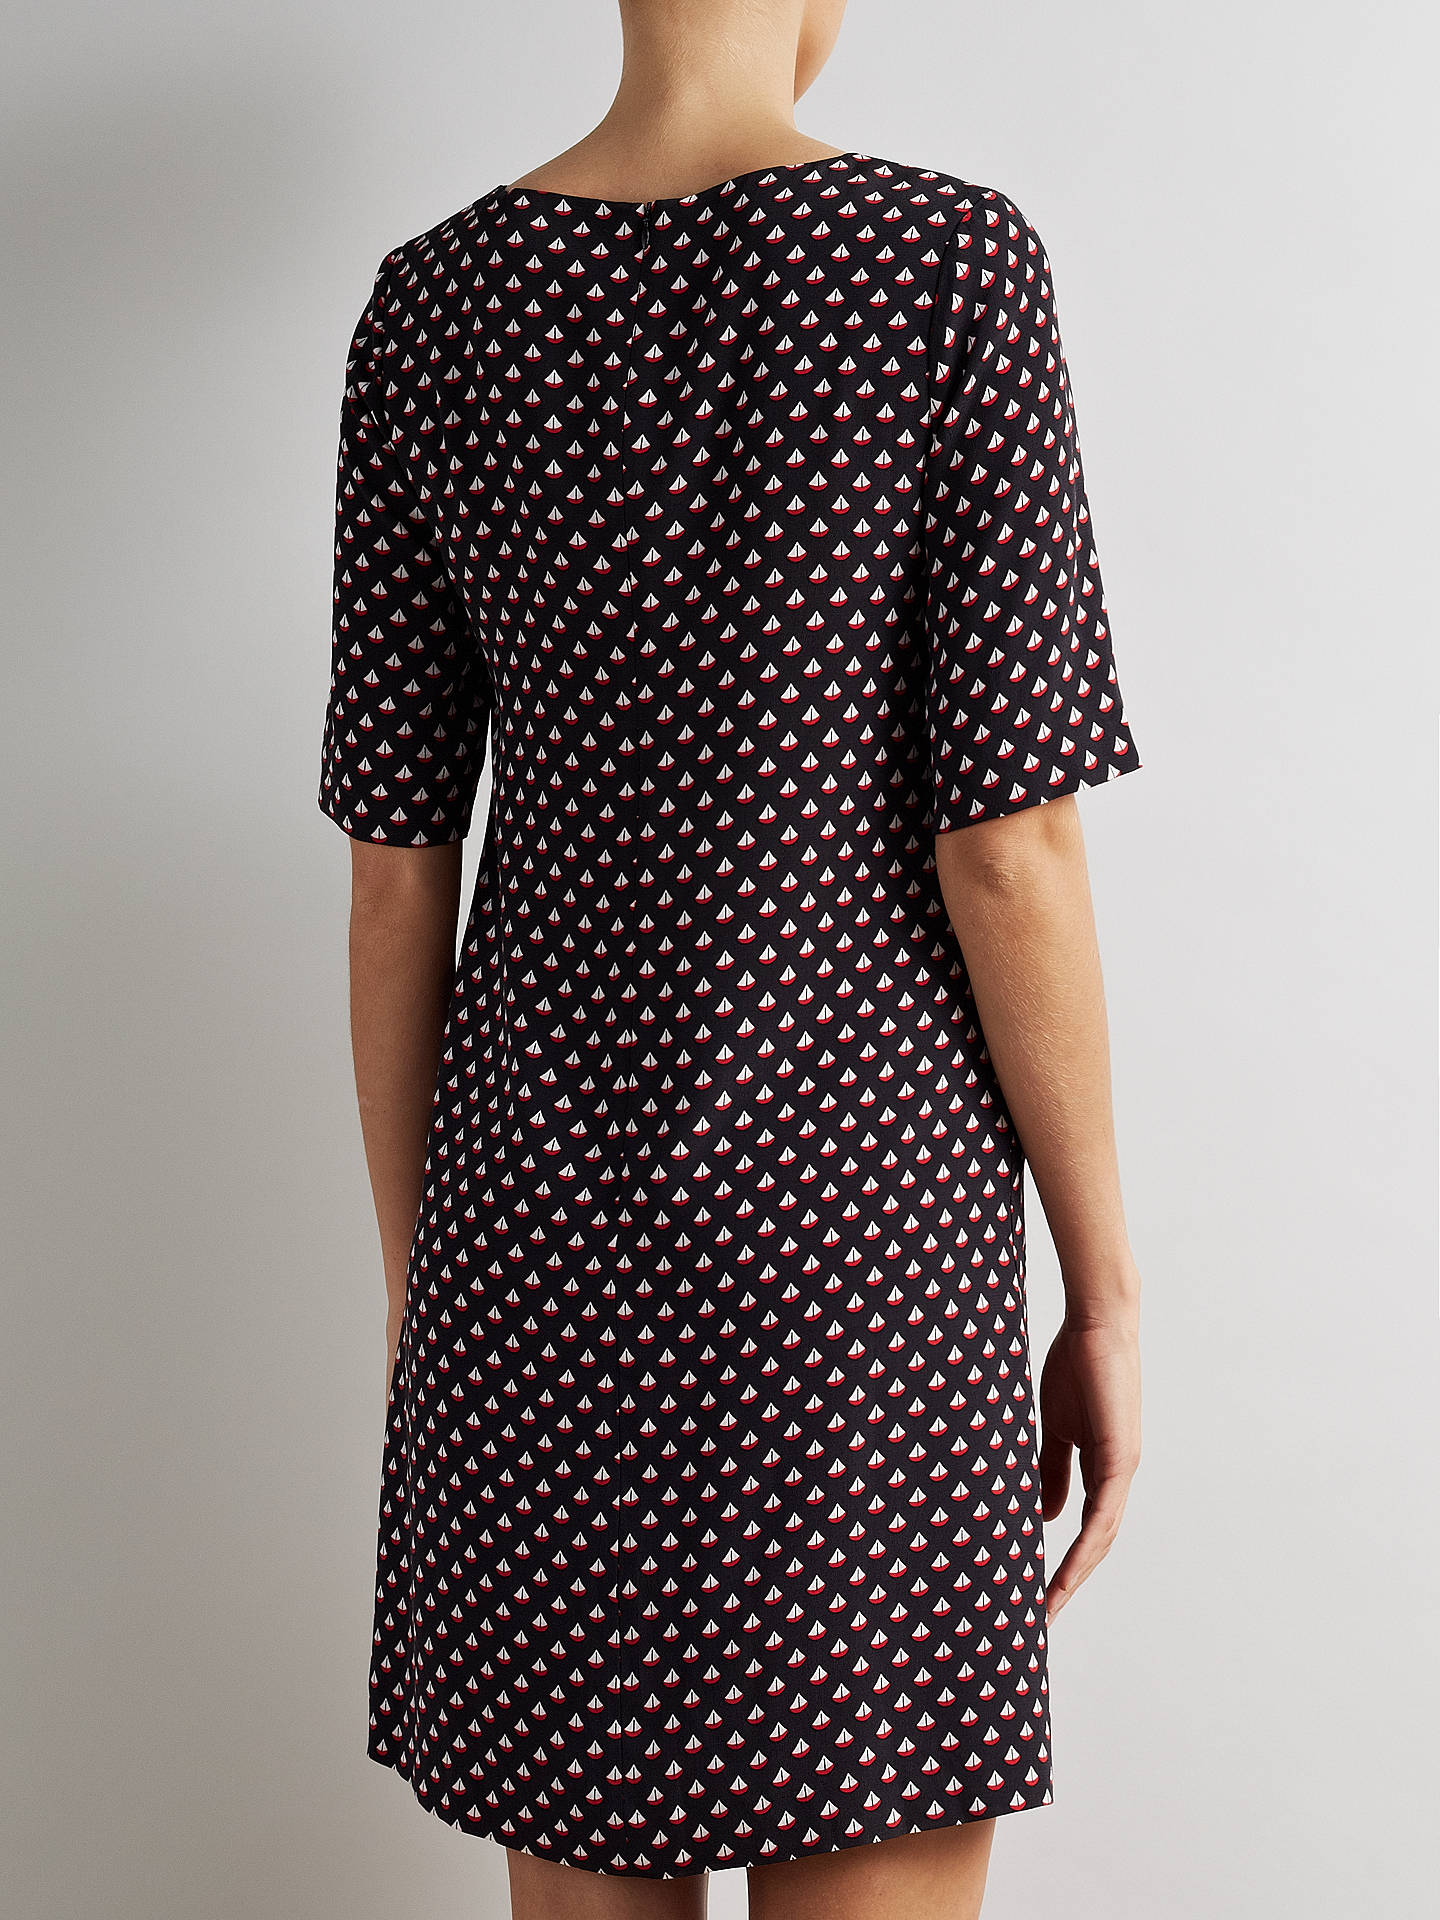 BuySomerset by Alice Temperley Boat Print Dress, Black, 8 Online at johnlewis.com